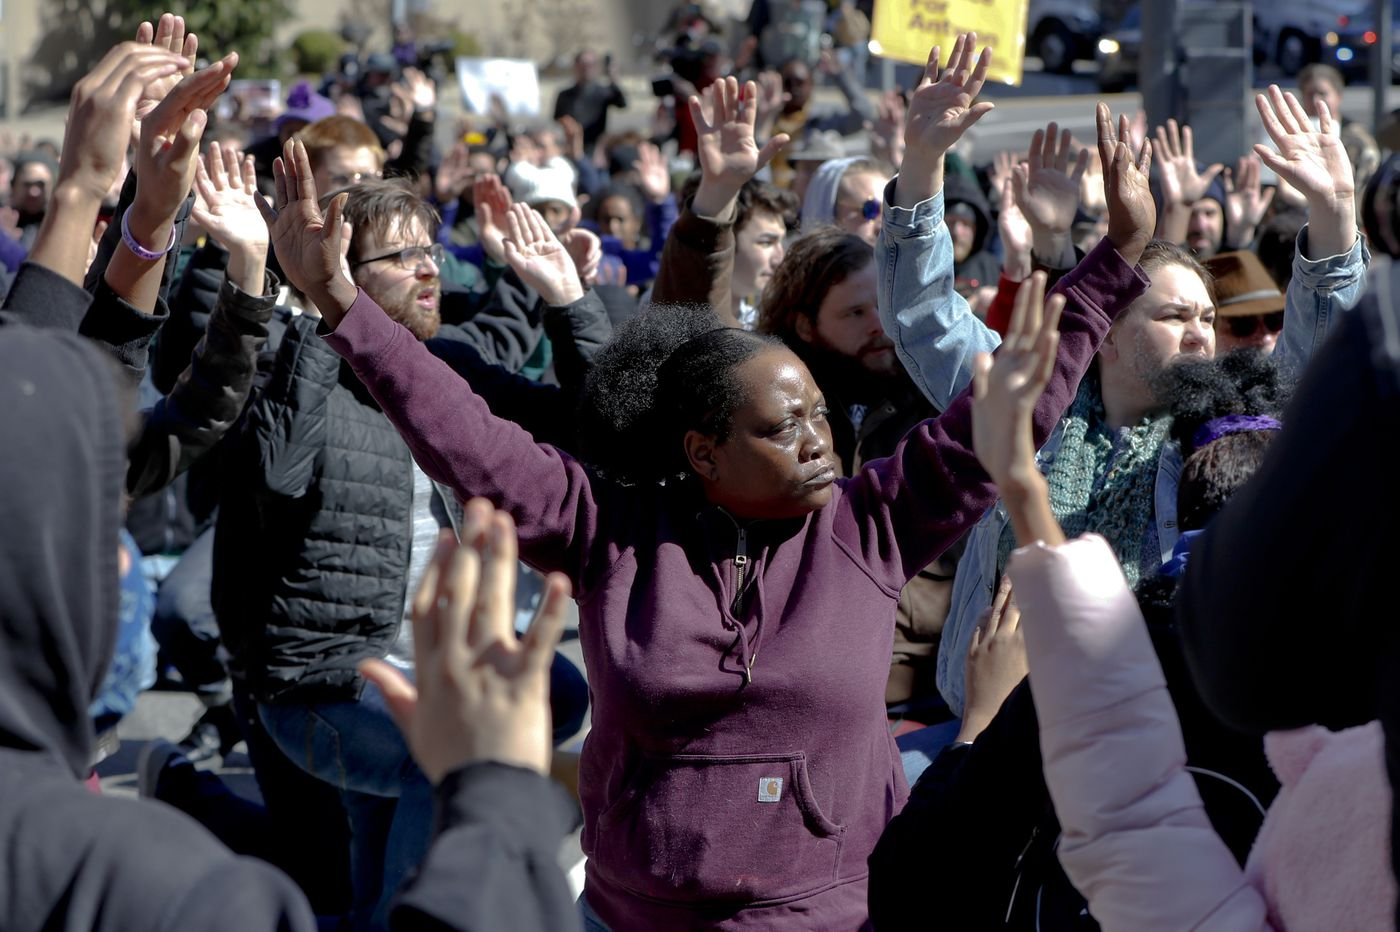 High school, college students in Pittsburgh expected to protest after Antwon Rose trial acquittal